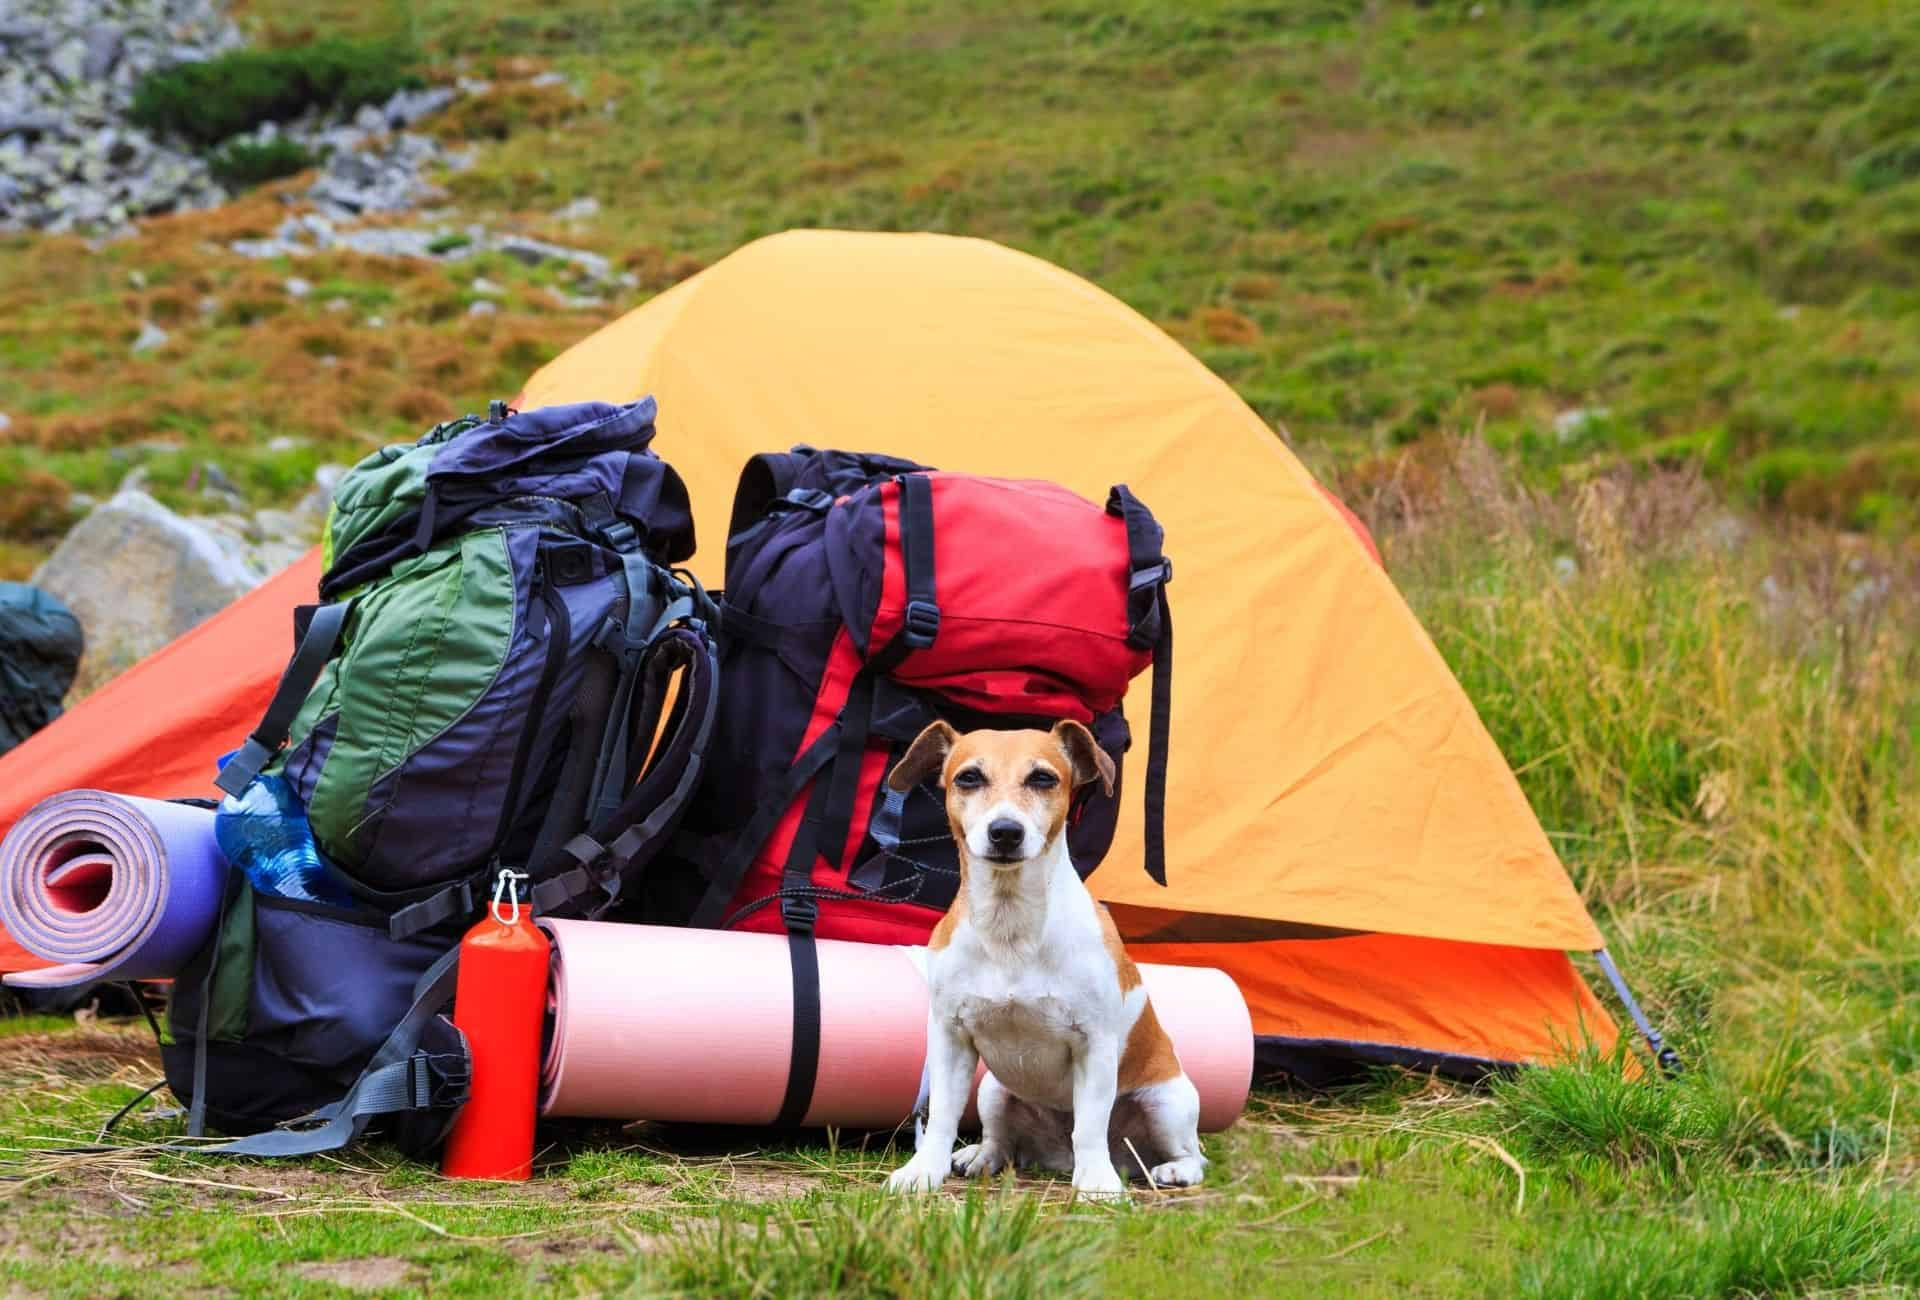 Small dog sits in front of tent with two heavy backpacks, looking ready to go.